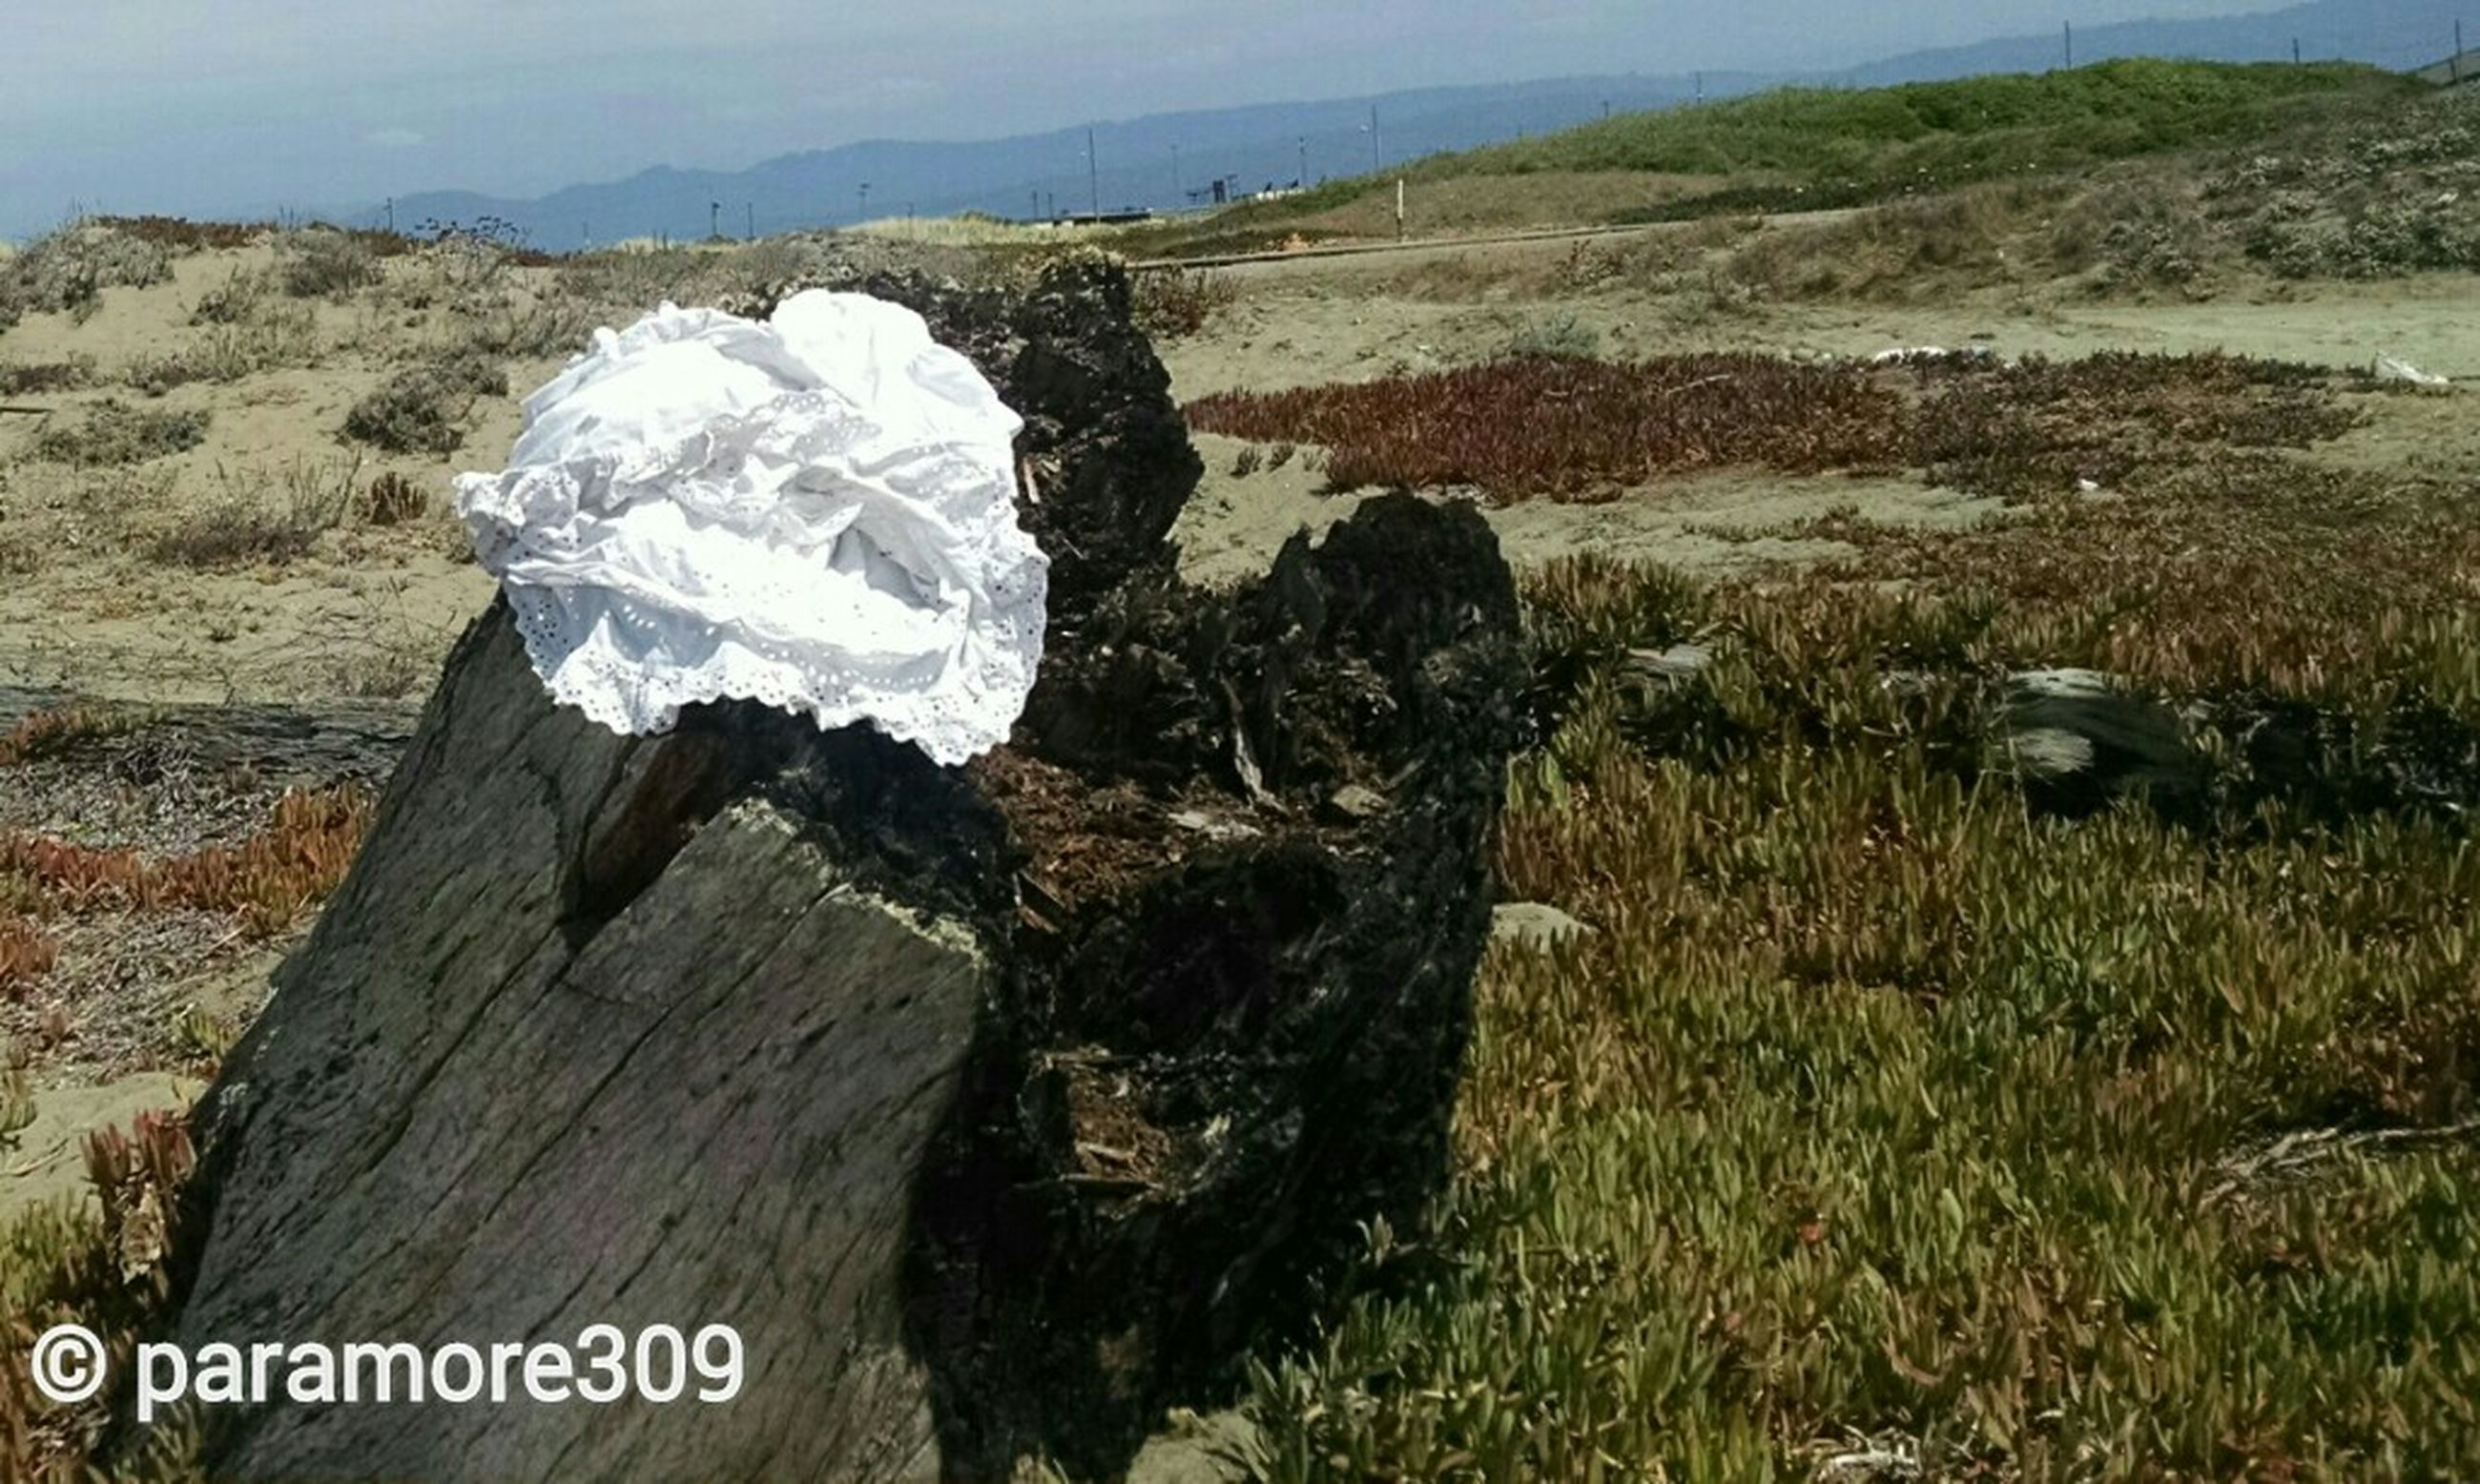 tranquility, water, text, grass, tranquil scene, nature, landscape, rock - object, western script, day, mountain, high angle view, non-urban scene, outdoors, scenics, beauty in nature, no people, communication, field, remote